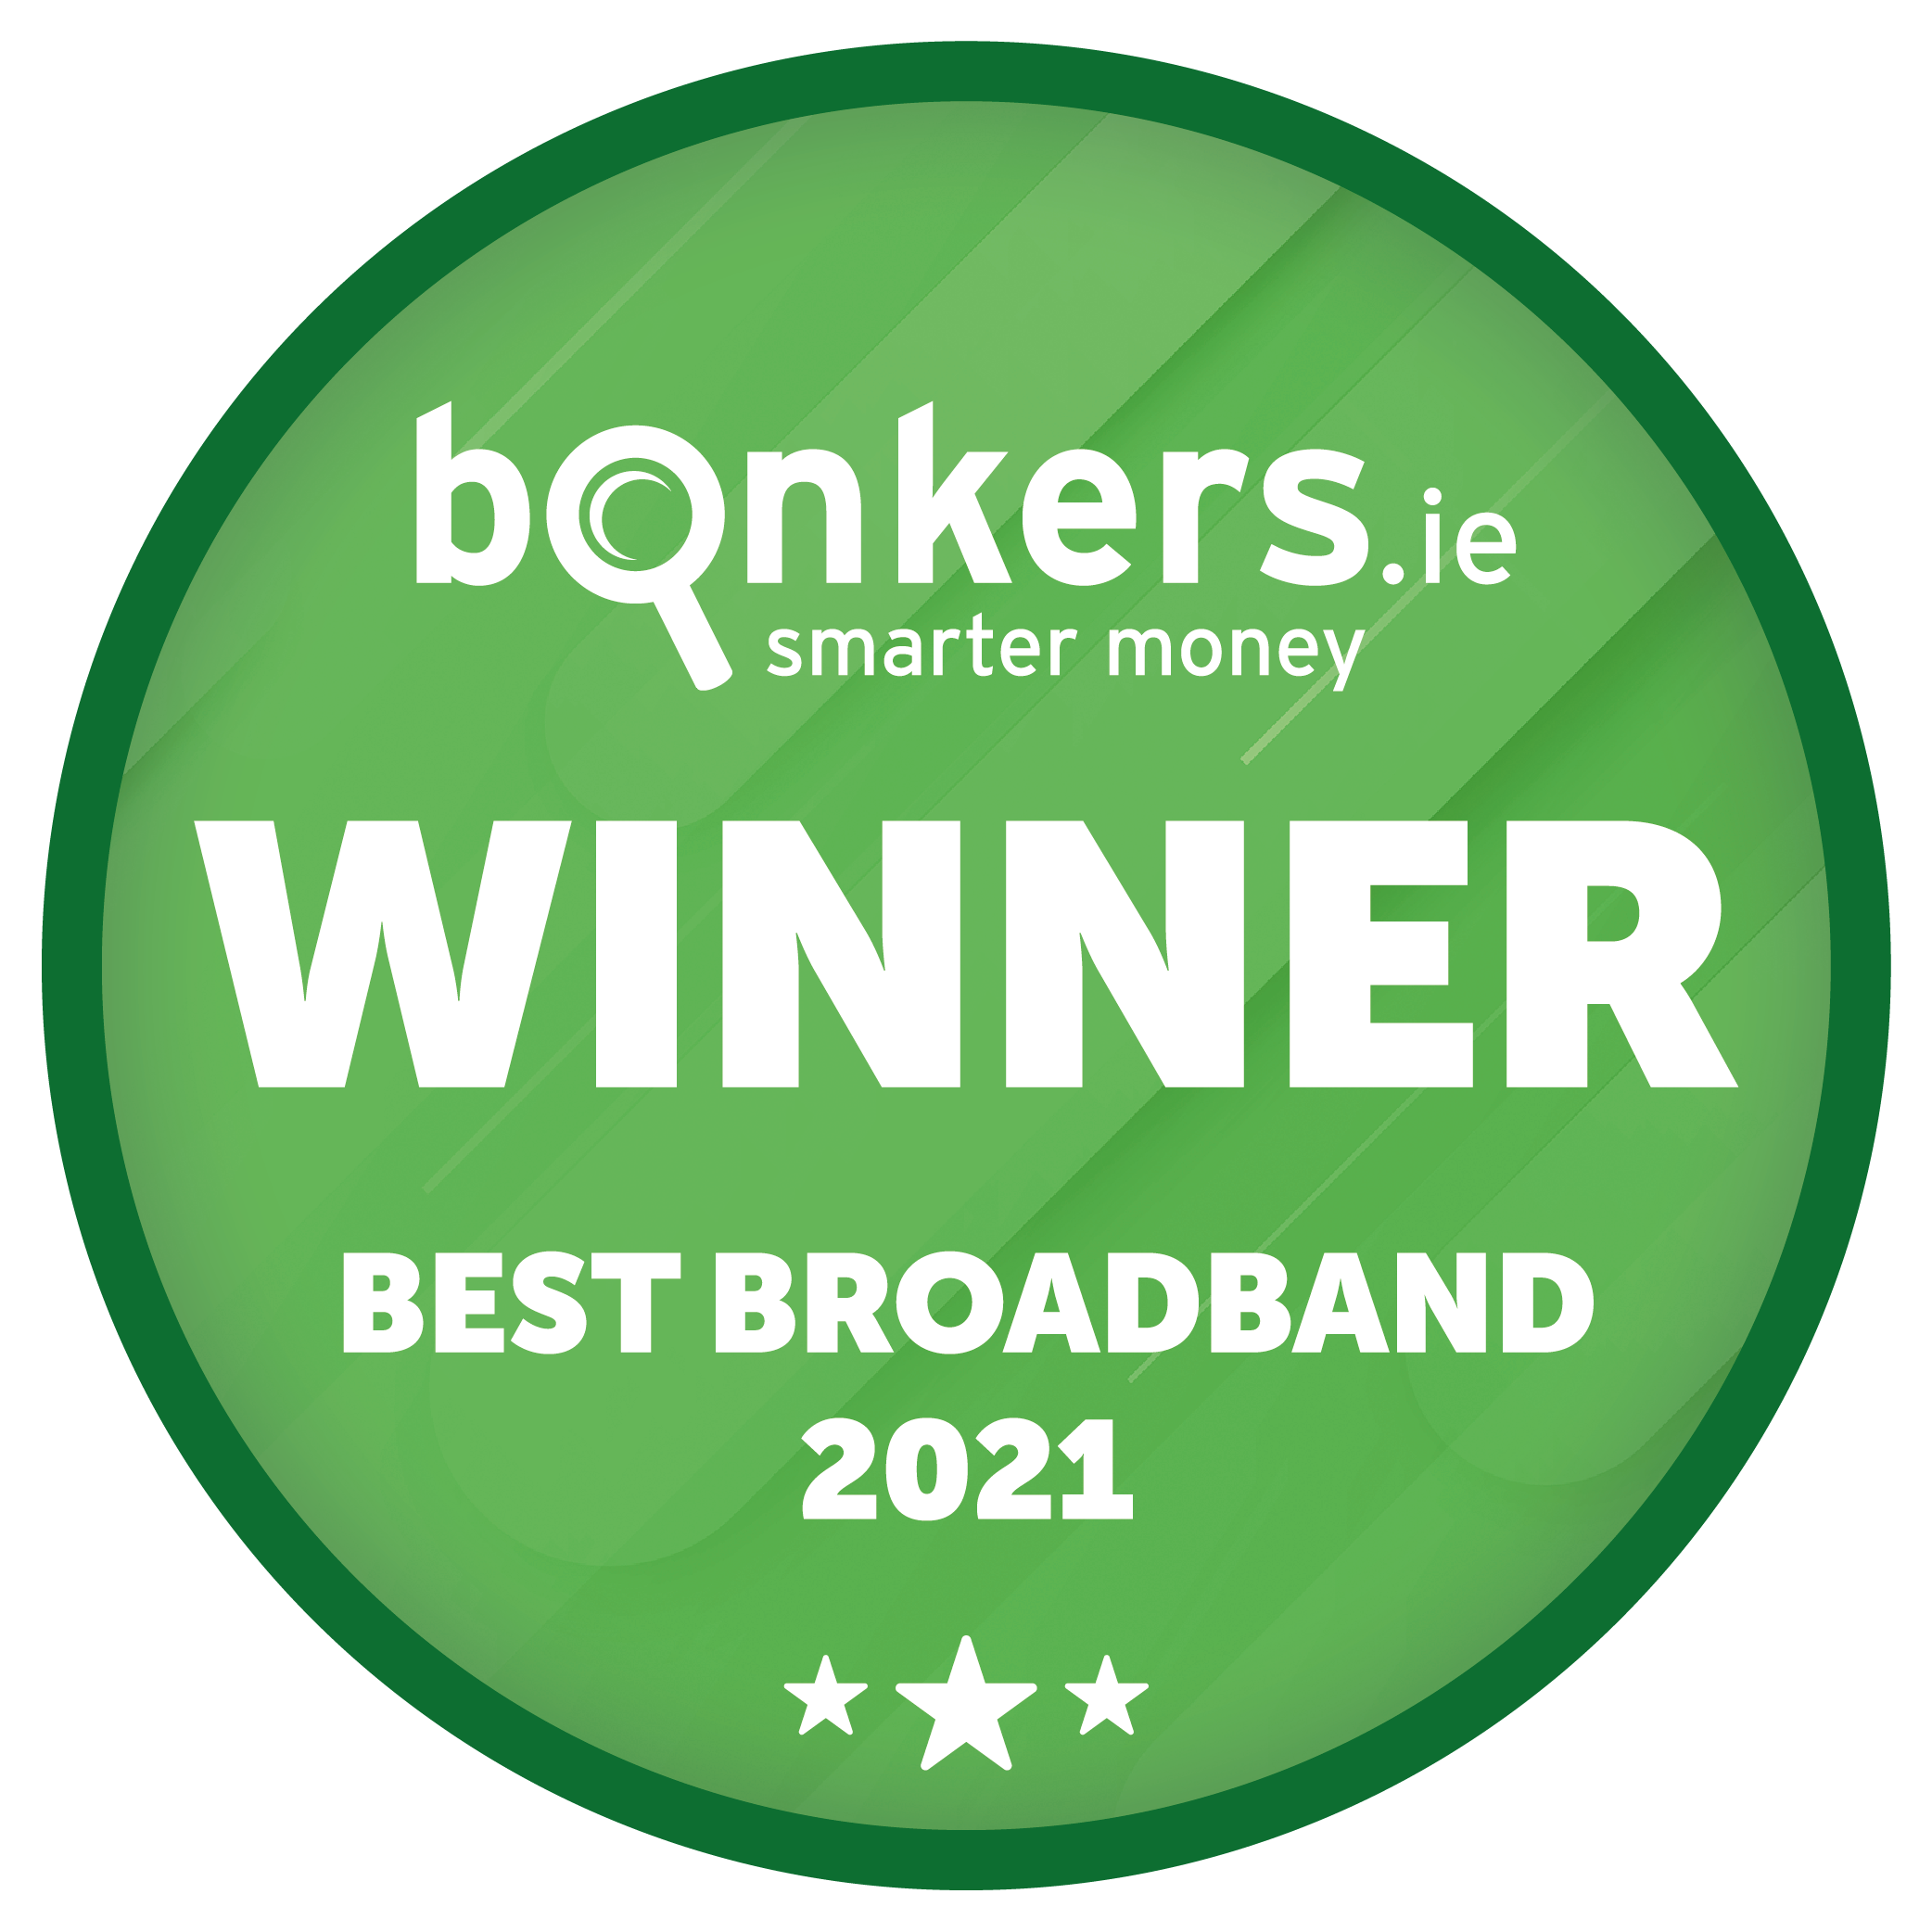 Award's logo The Best Broadband 2021